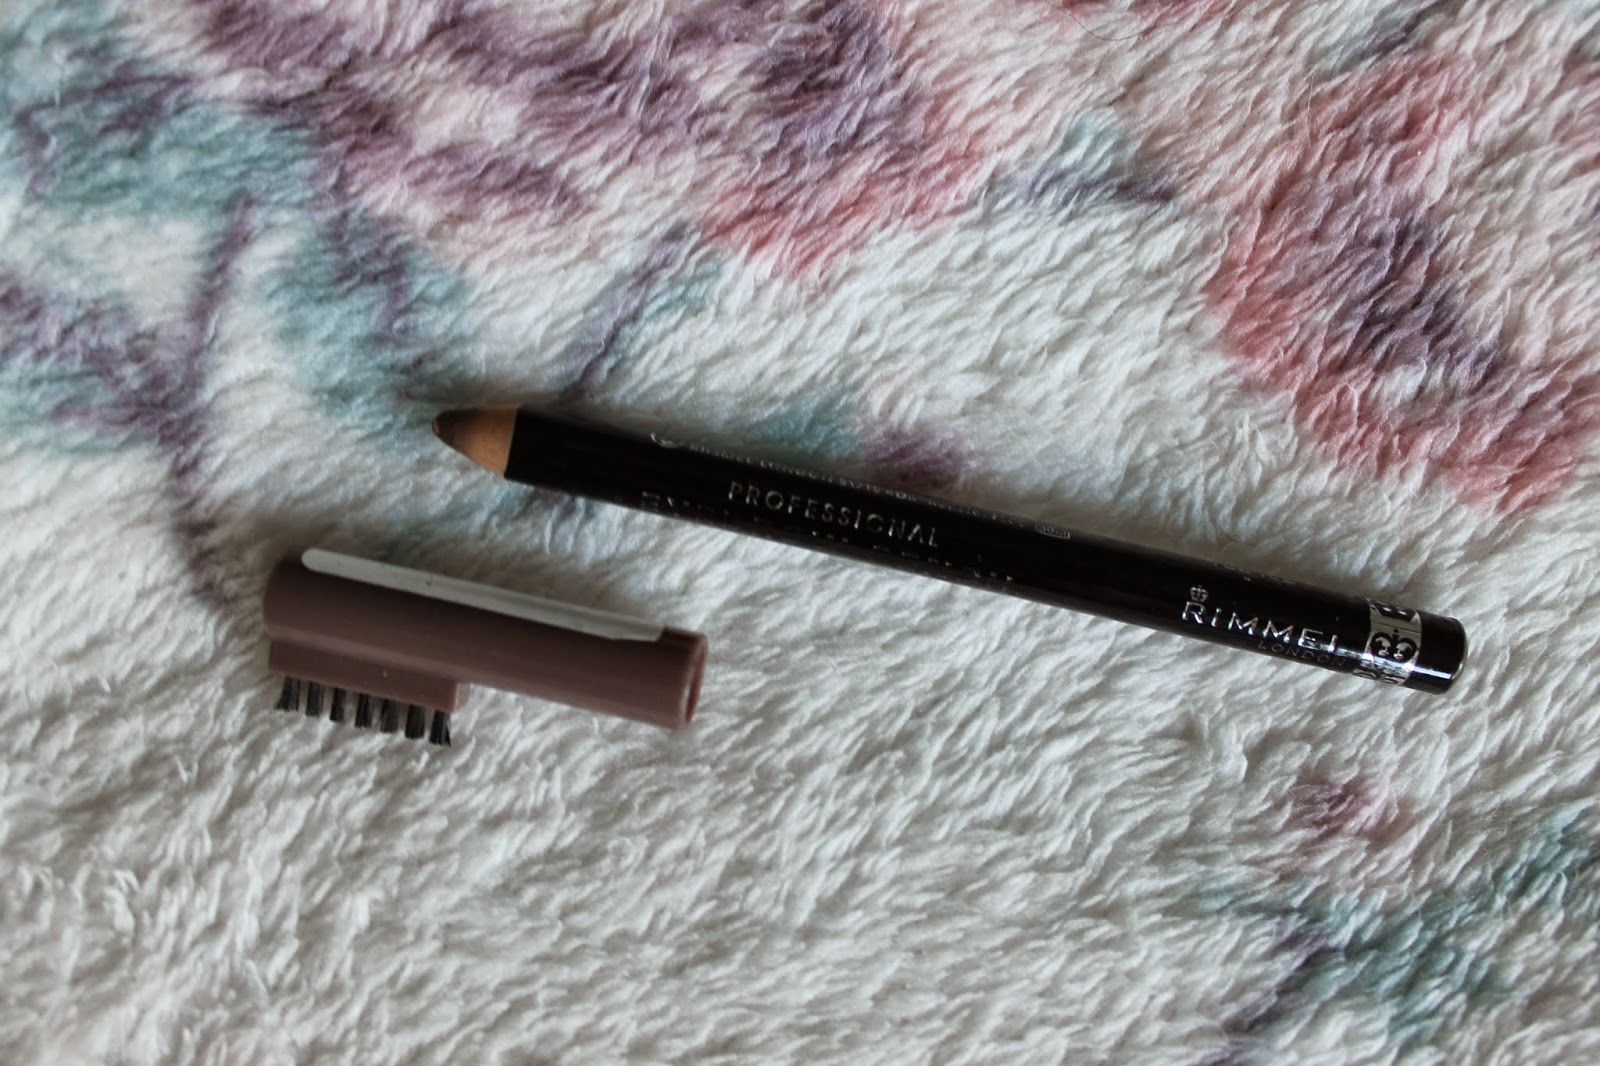 Eyebrows 101: Rimmel London Professional Eyebrow Pencil